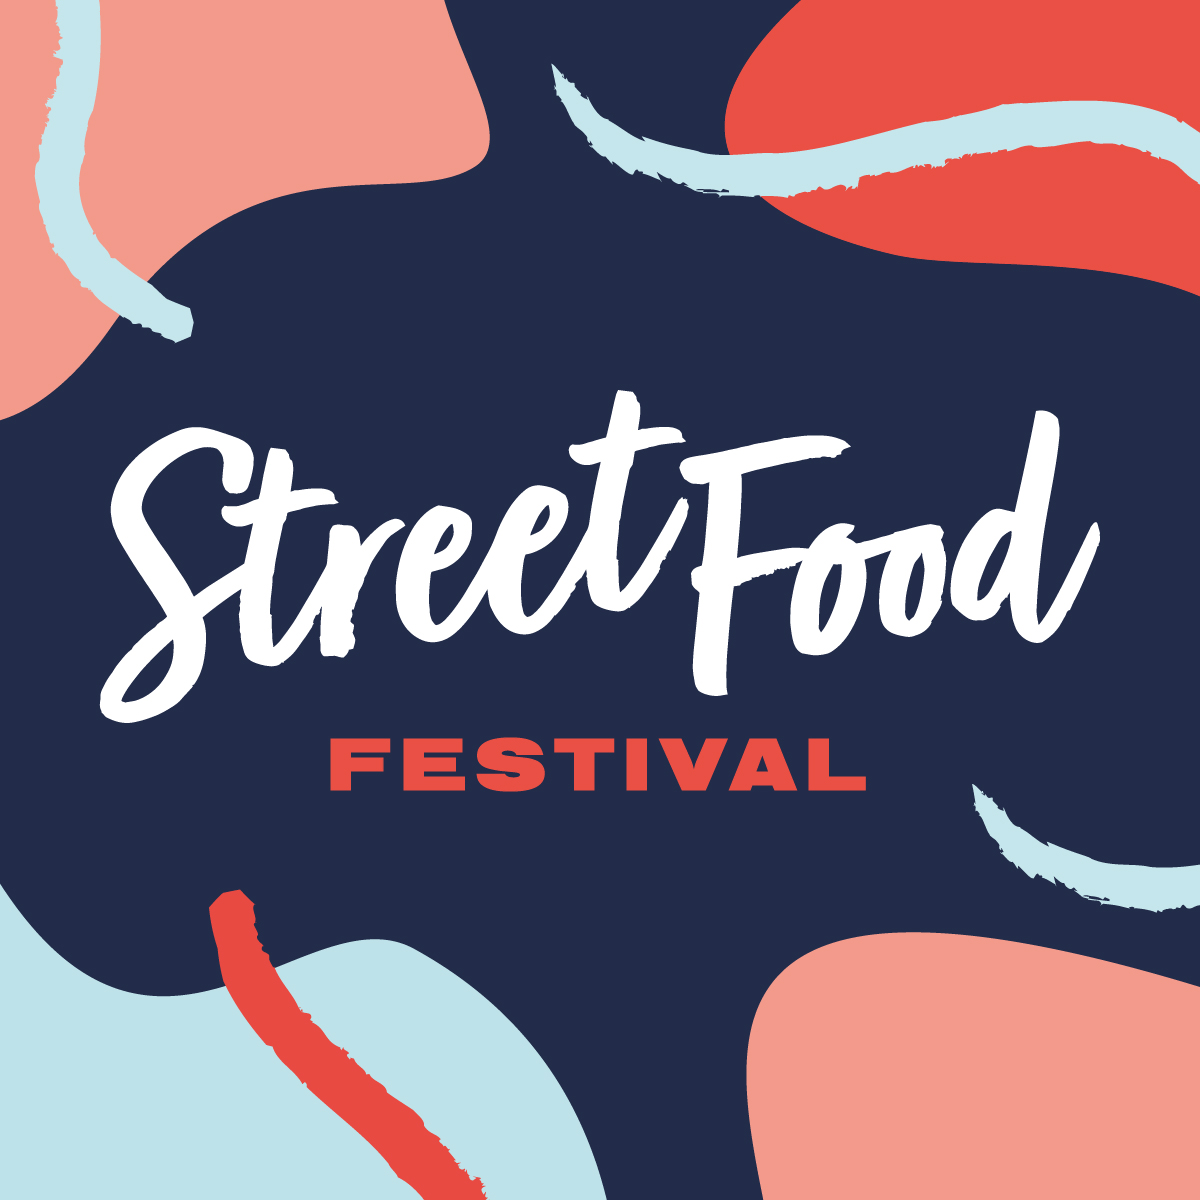 Milford Haven Street Food Festival